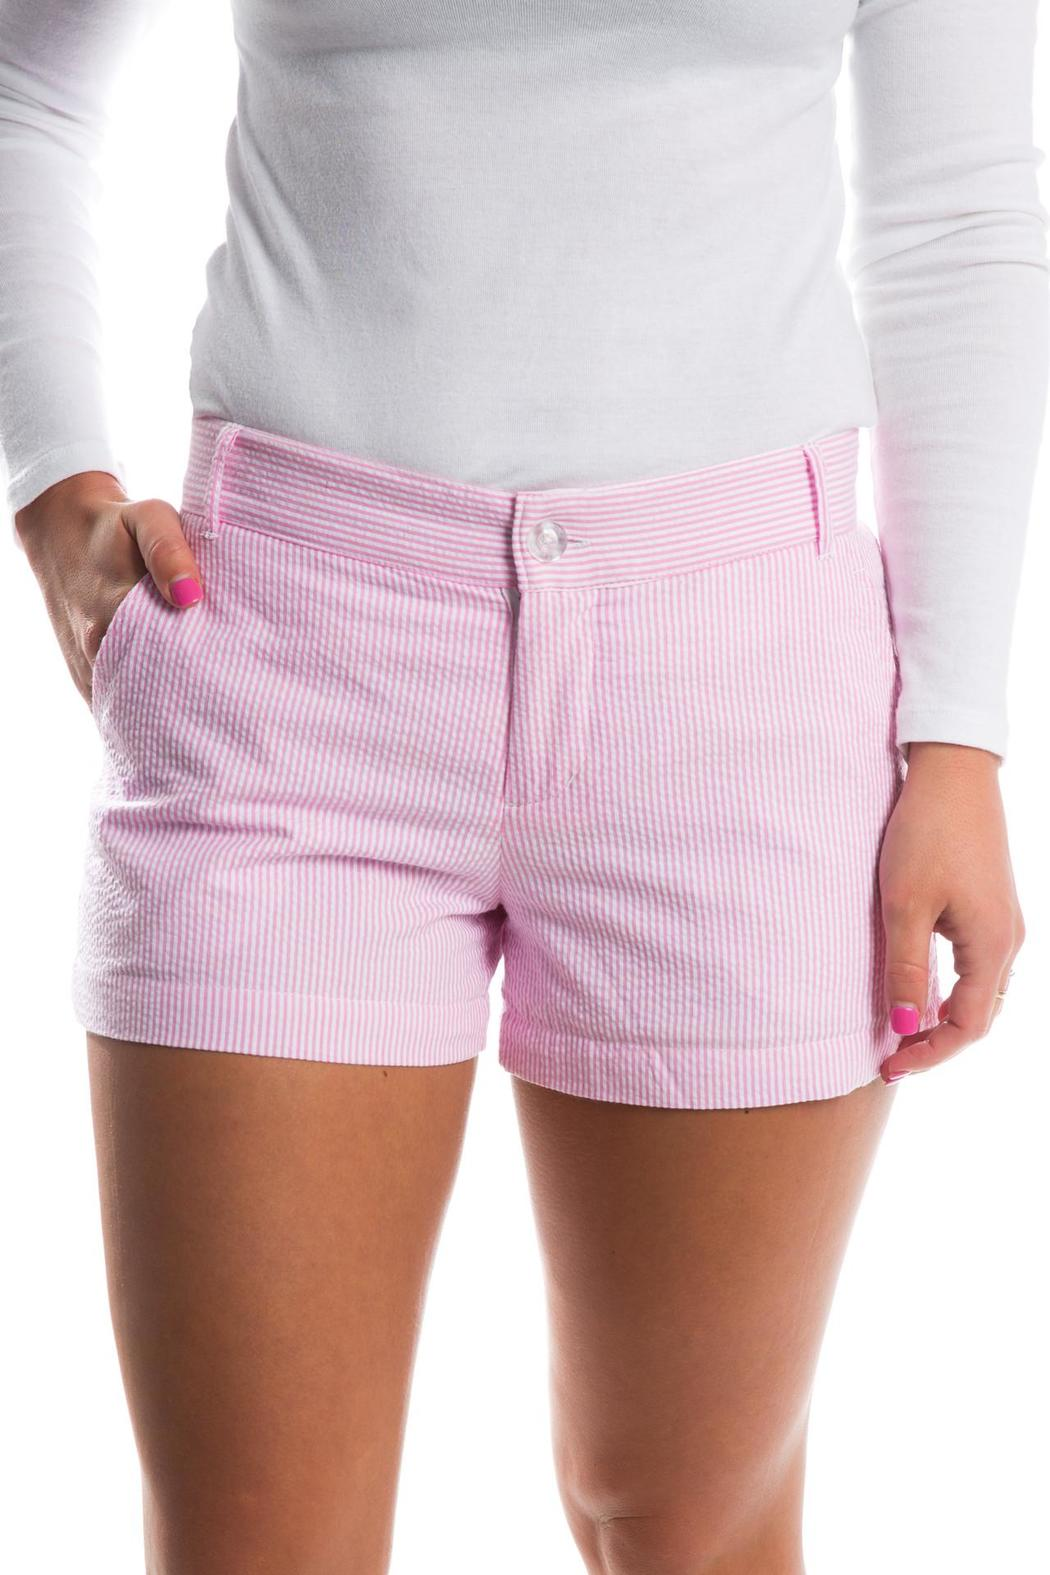 Lauren James Seersucker Poplin Shorts - Main Image